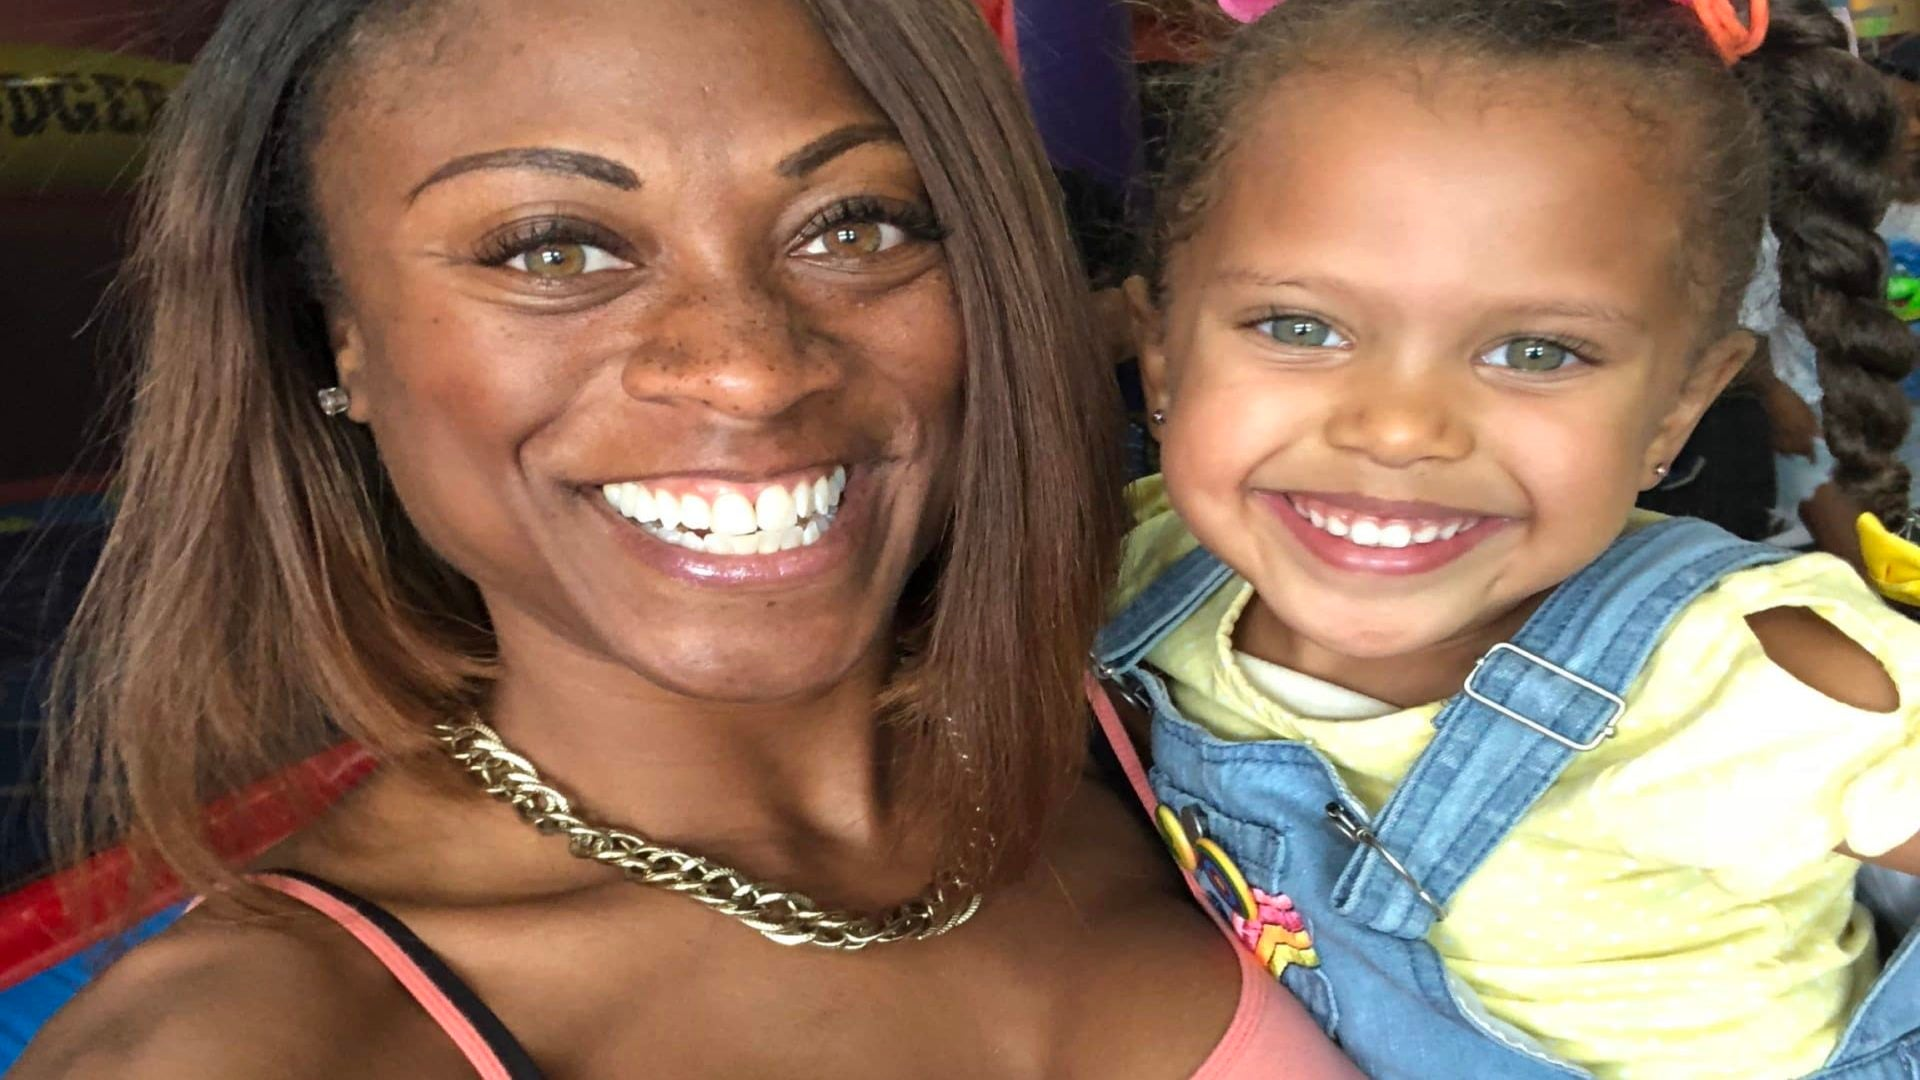 Comedienne Angelina Spicer Is Using Humor And Her Experience With Postpartum Depression To Draw Back The Veil Of Shame